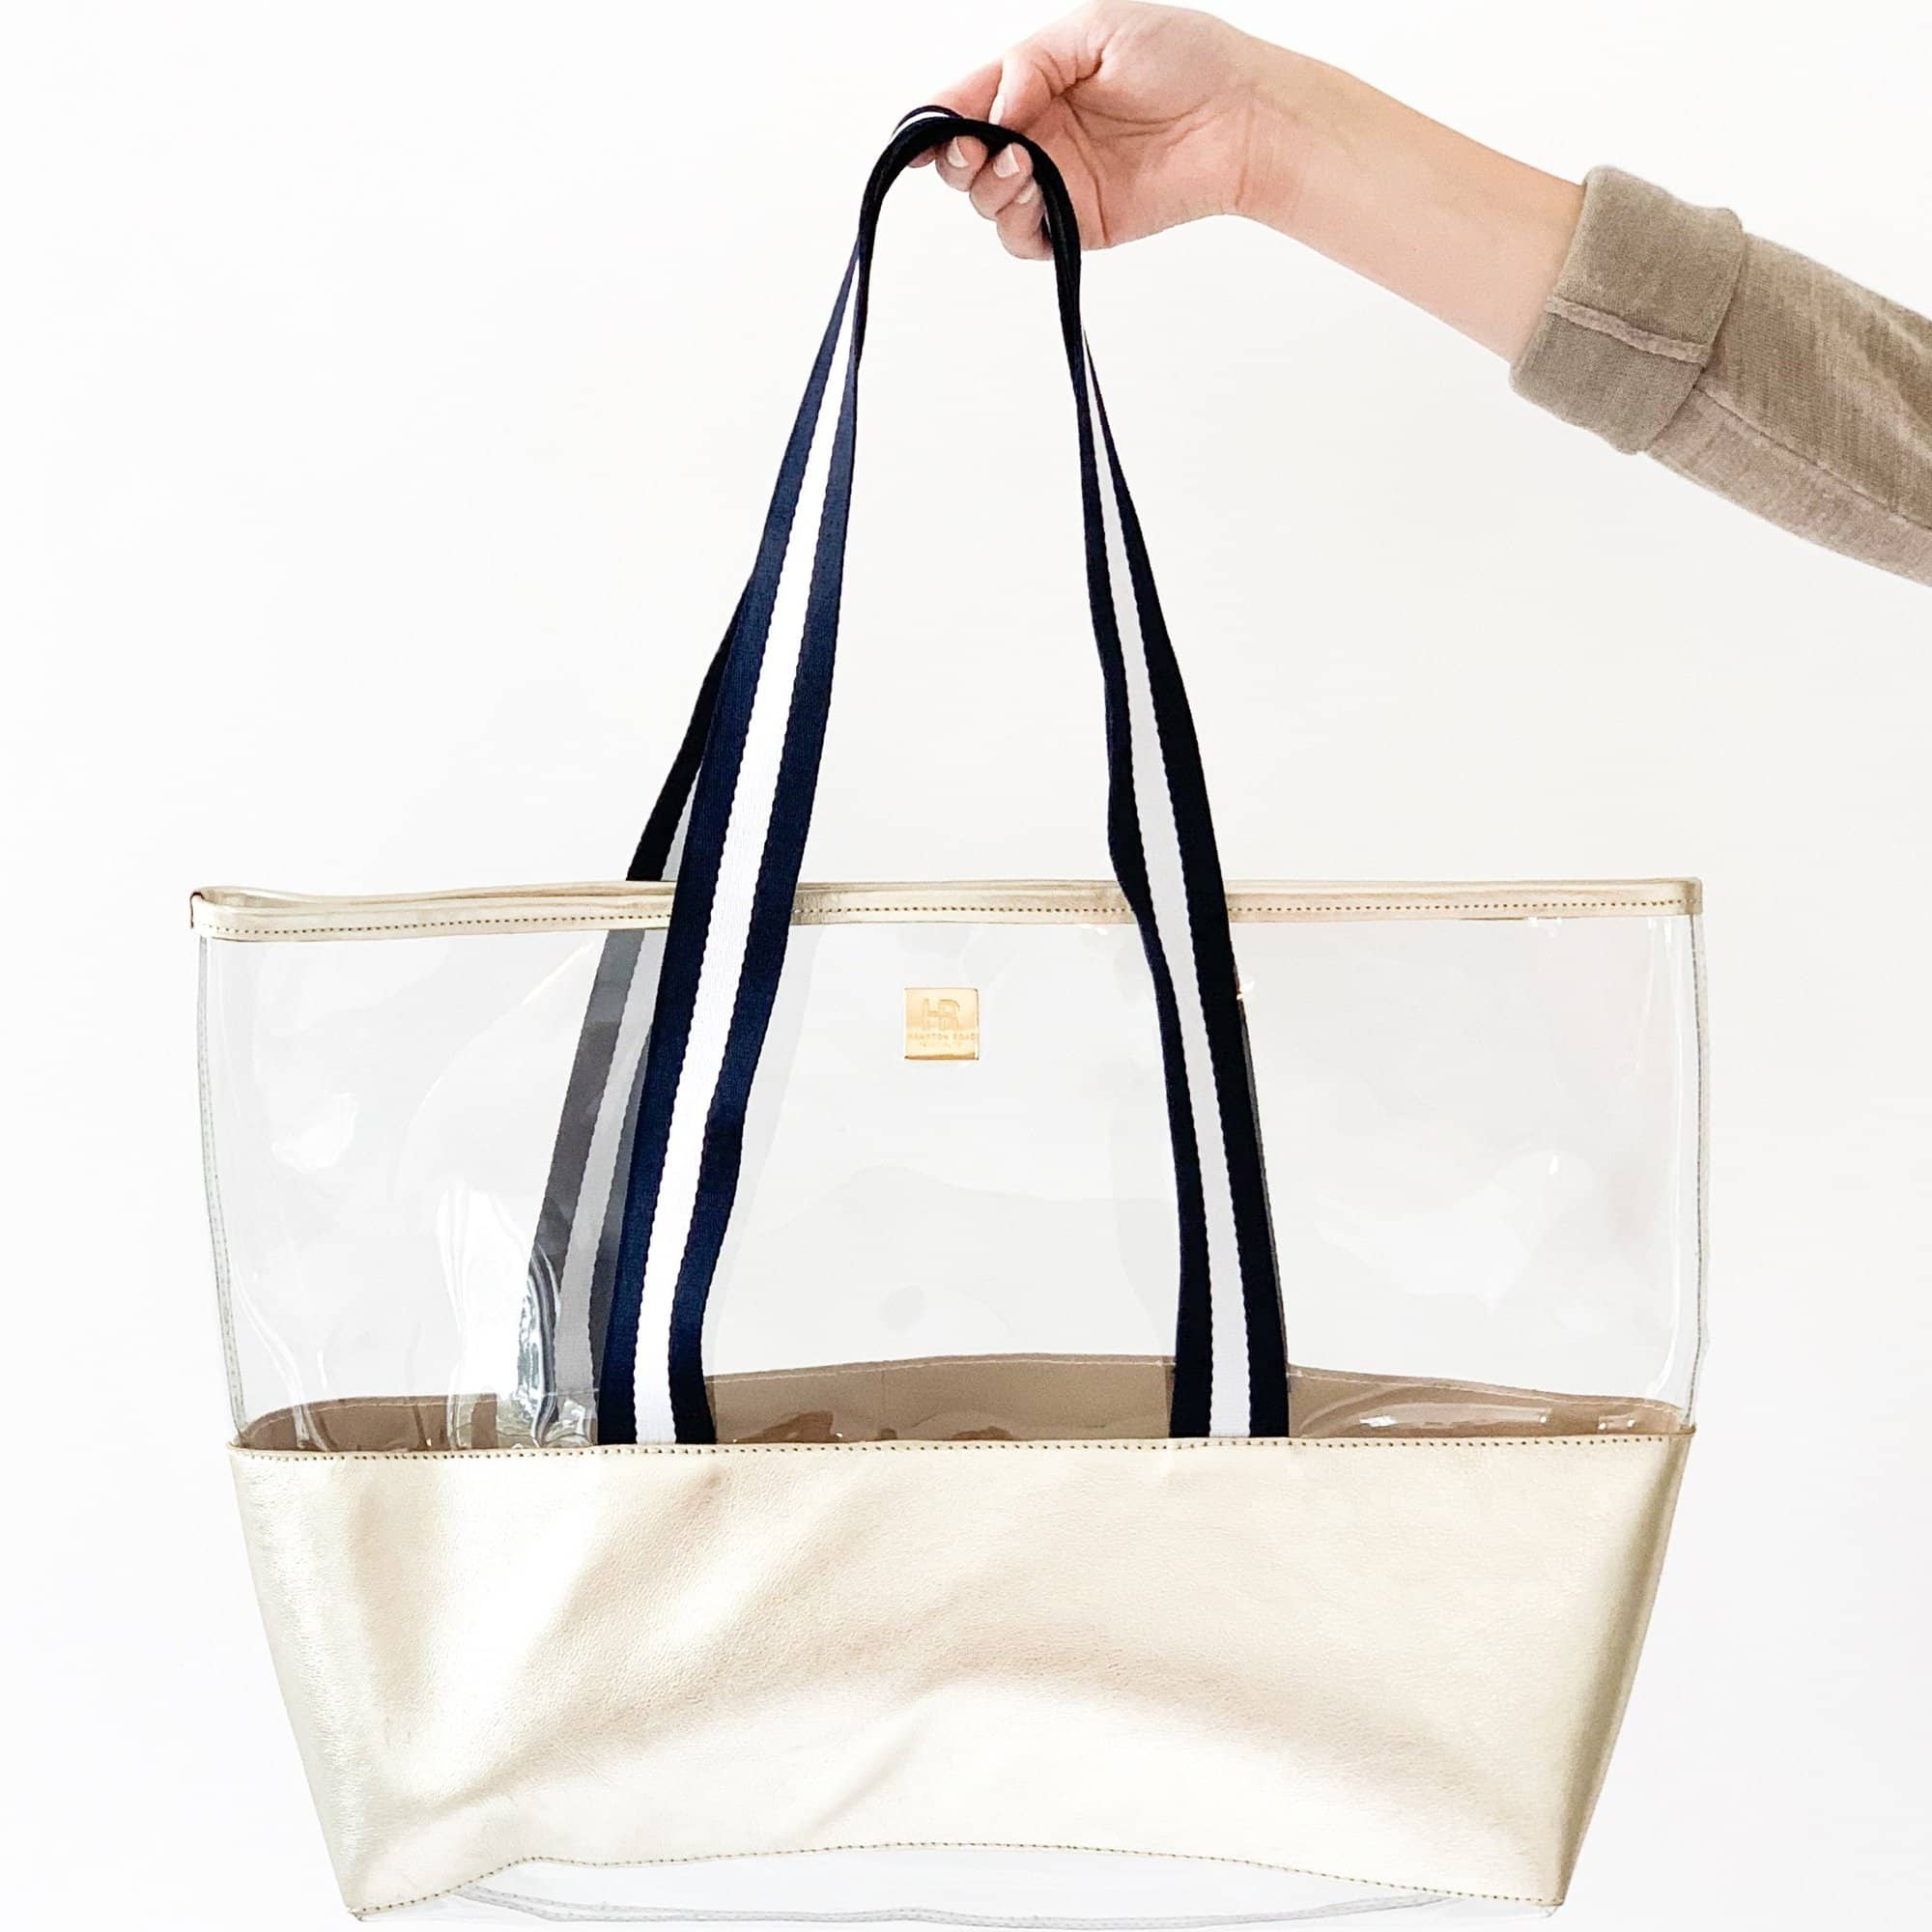 Ridgemont Tote, Gold + Navy & White - Hampton Road Designs